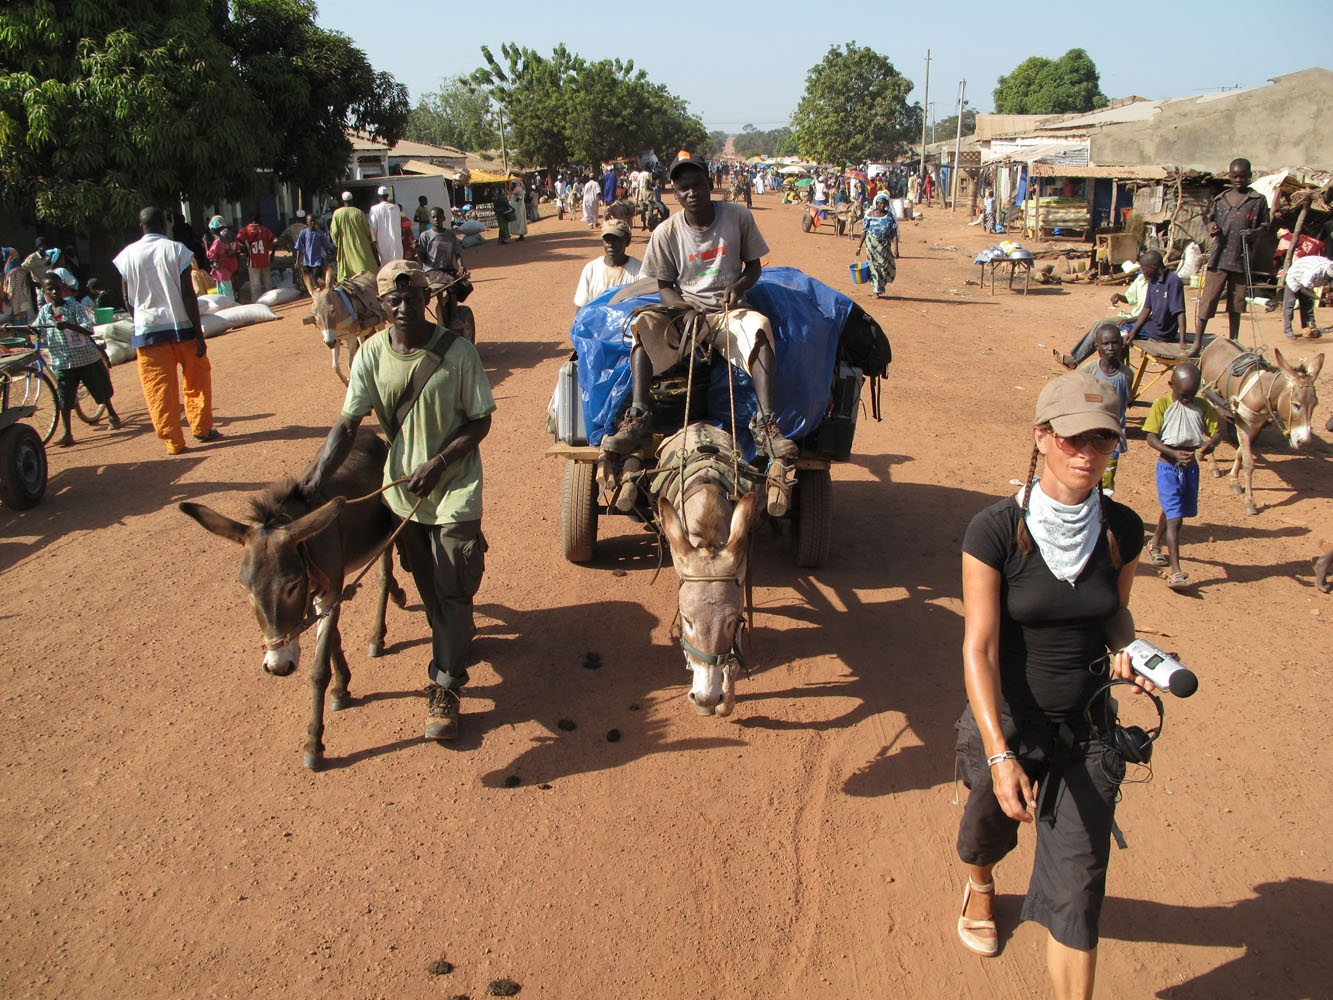 A Short Walk in The Gambian Bush. Image ©Jason Florio - the expedition team walk through a market town in The Gambia, West Africa